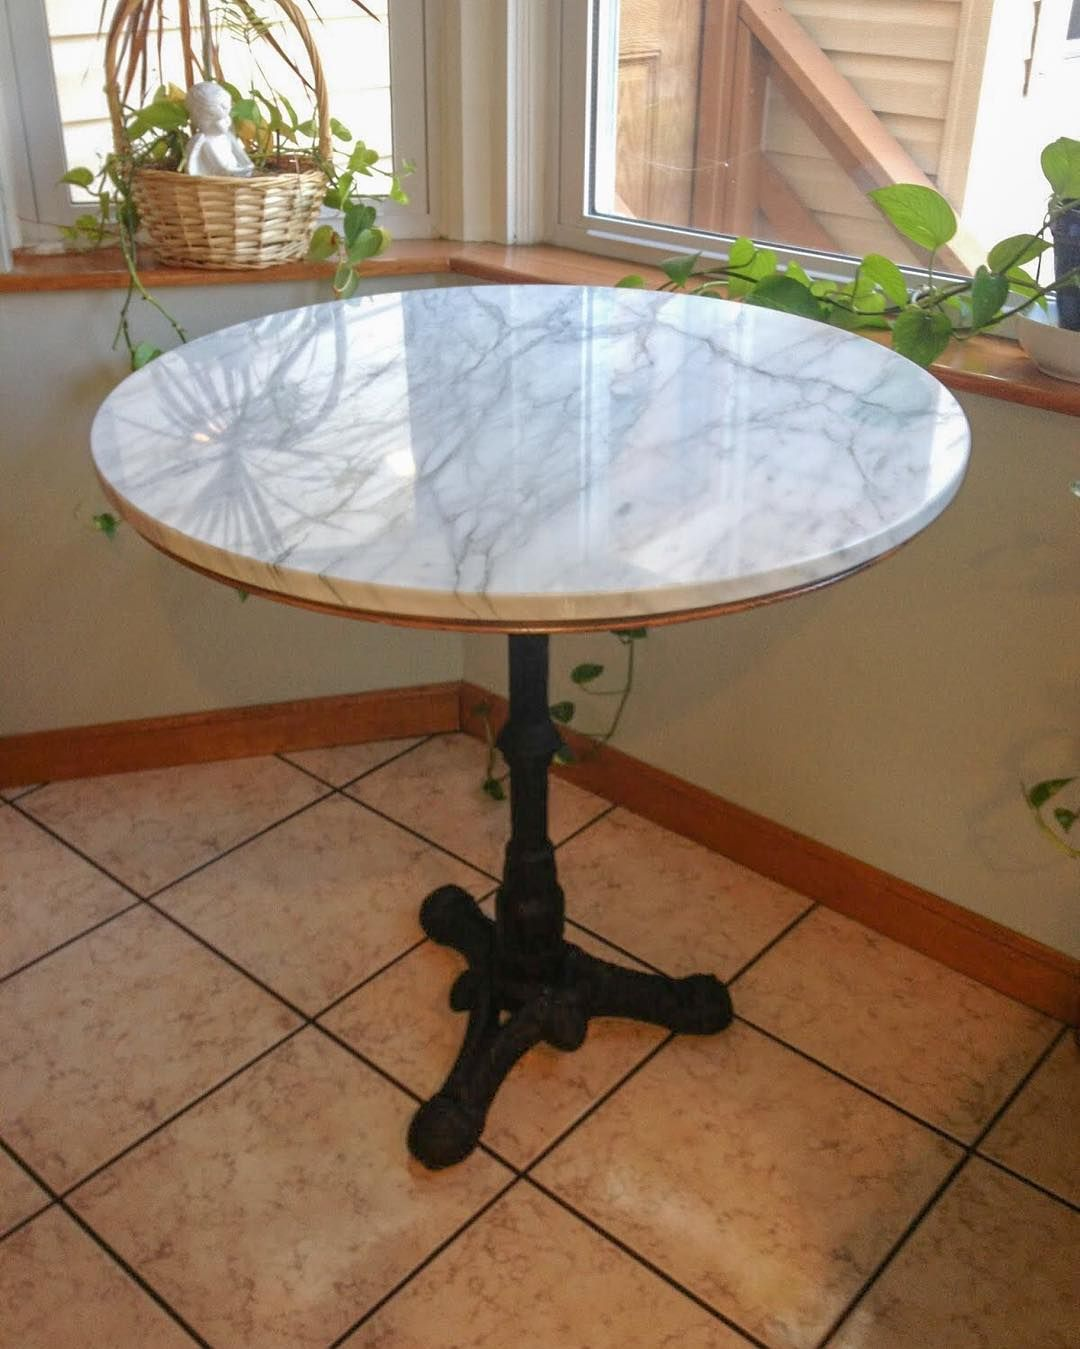 Tablebases Com On Instagram A Marble Bistro Table With Our Bistro 3 Base Made Diy Style On A B Marble Bistro Table Kitchen Table Marble Dining Table Marble